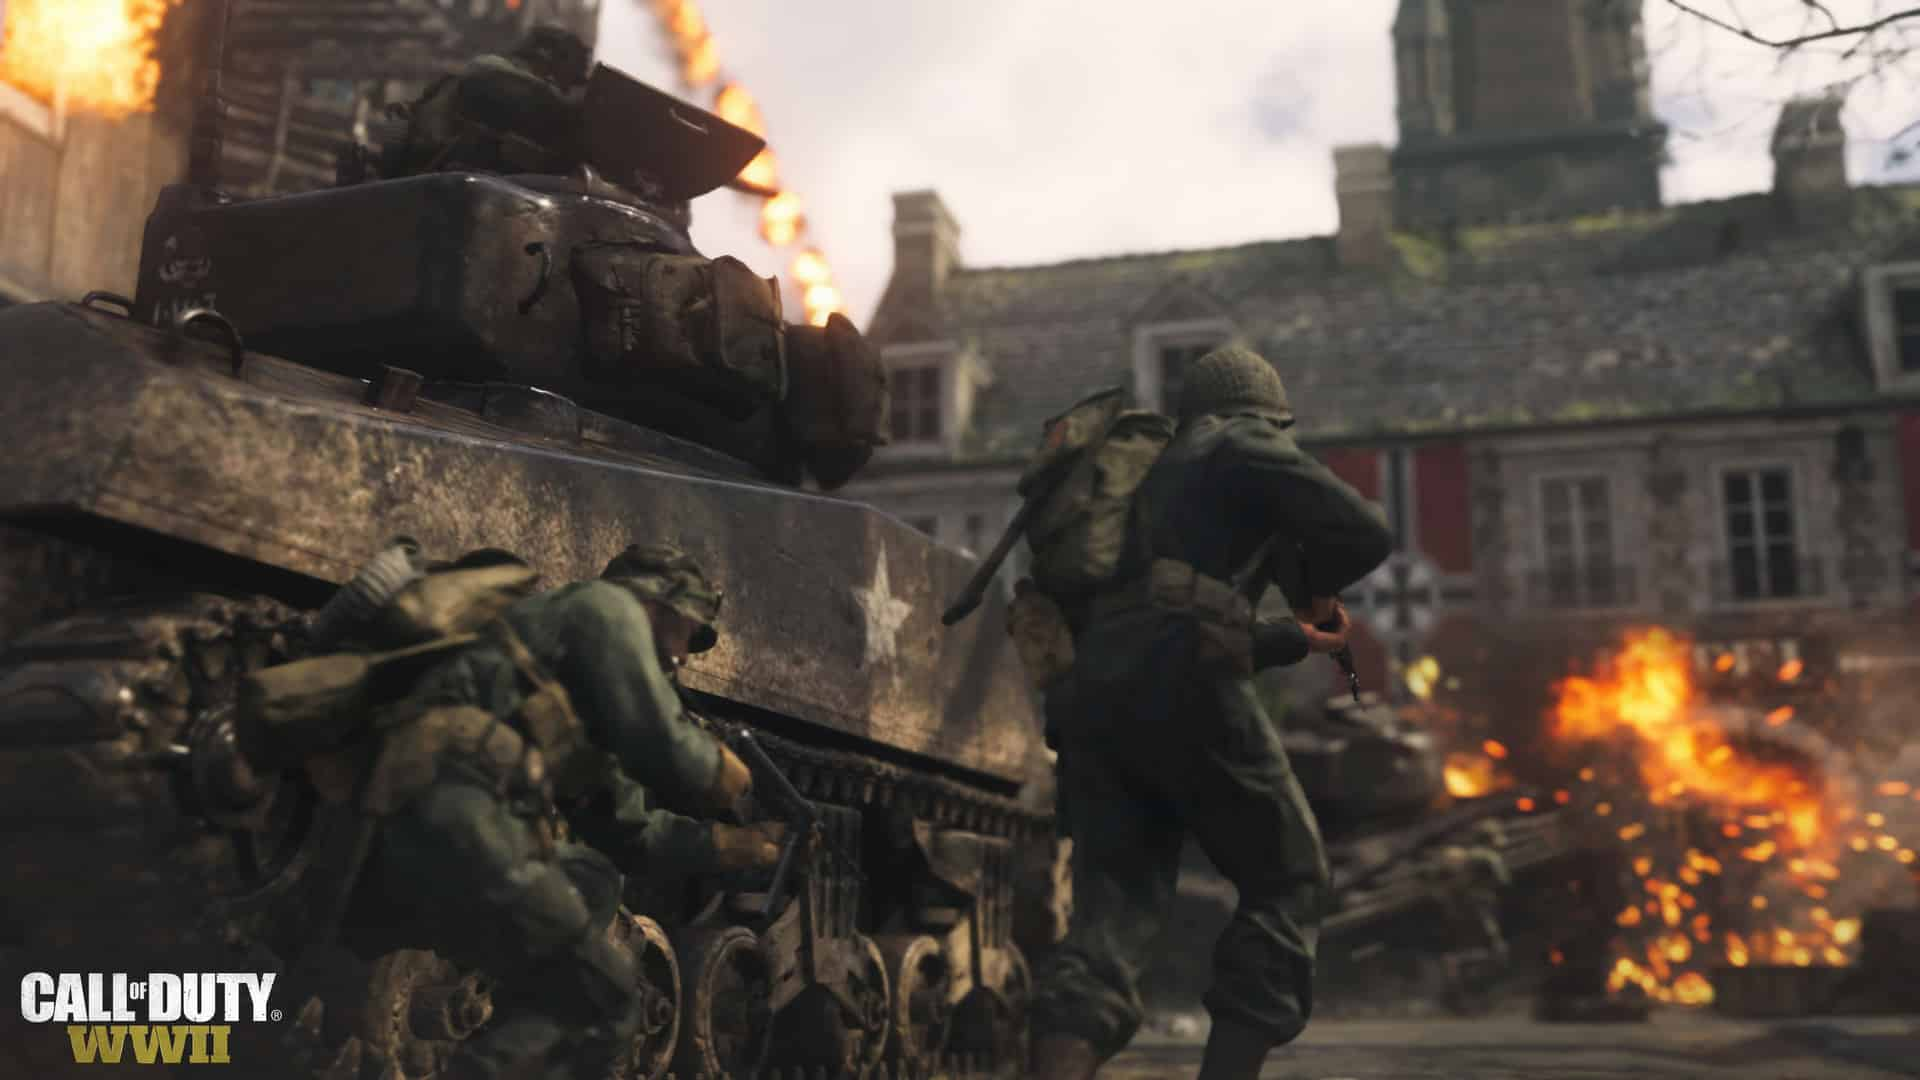 Call of Duty: WW2 sales surpass $500 million worldwide over release weekend